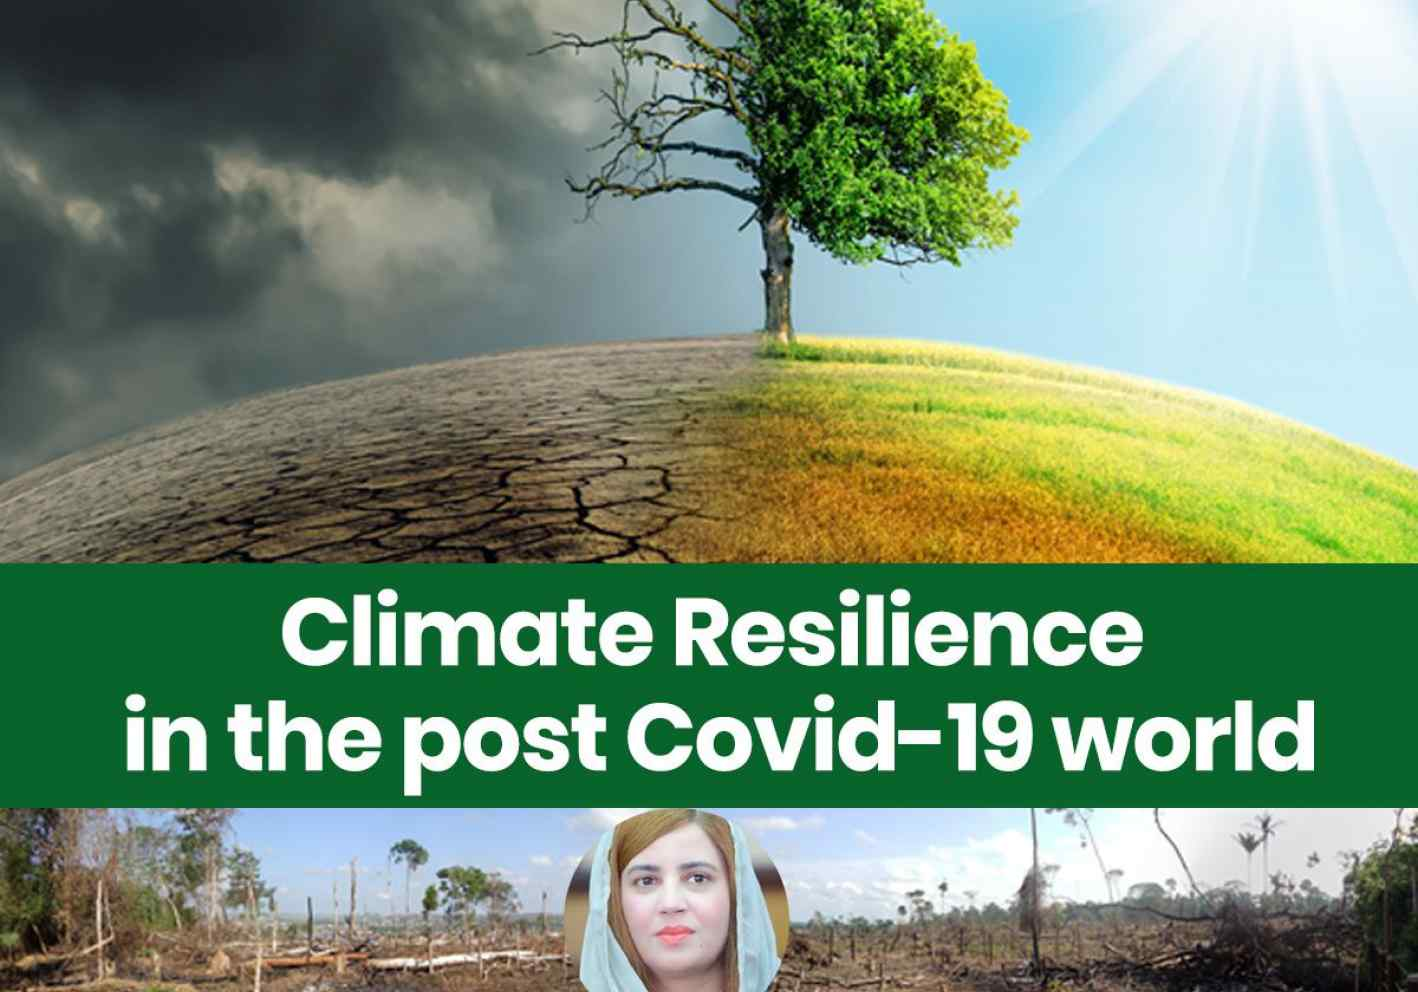 Climate Resilience in the post Covid-19 world